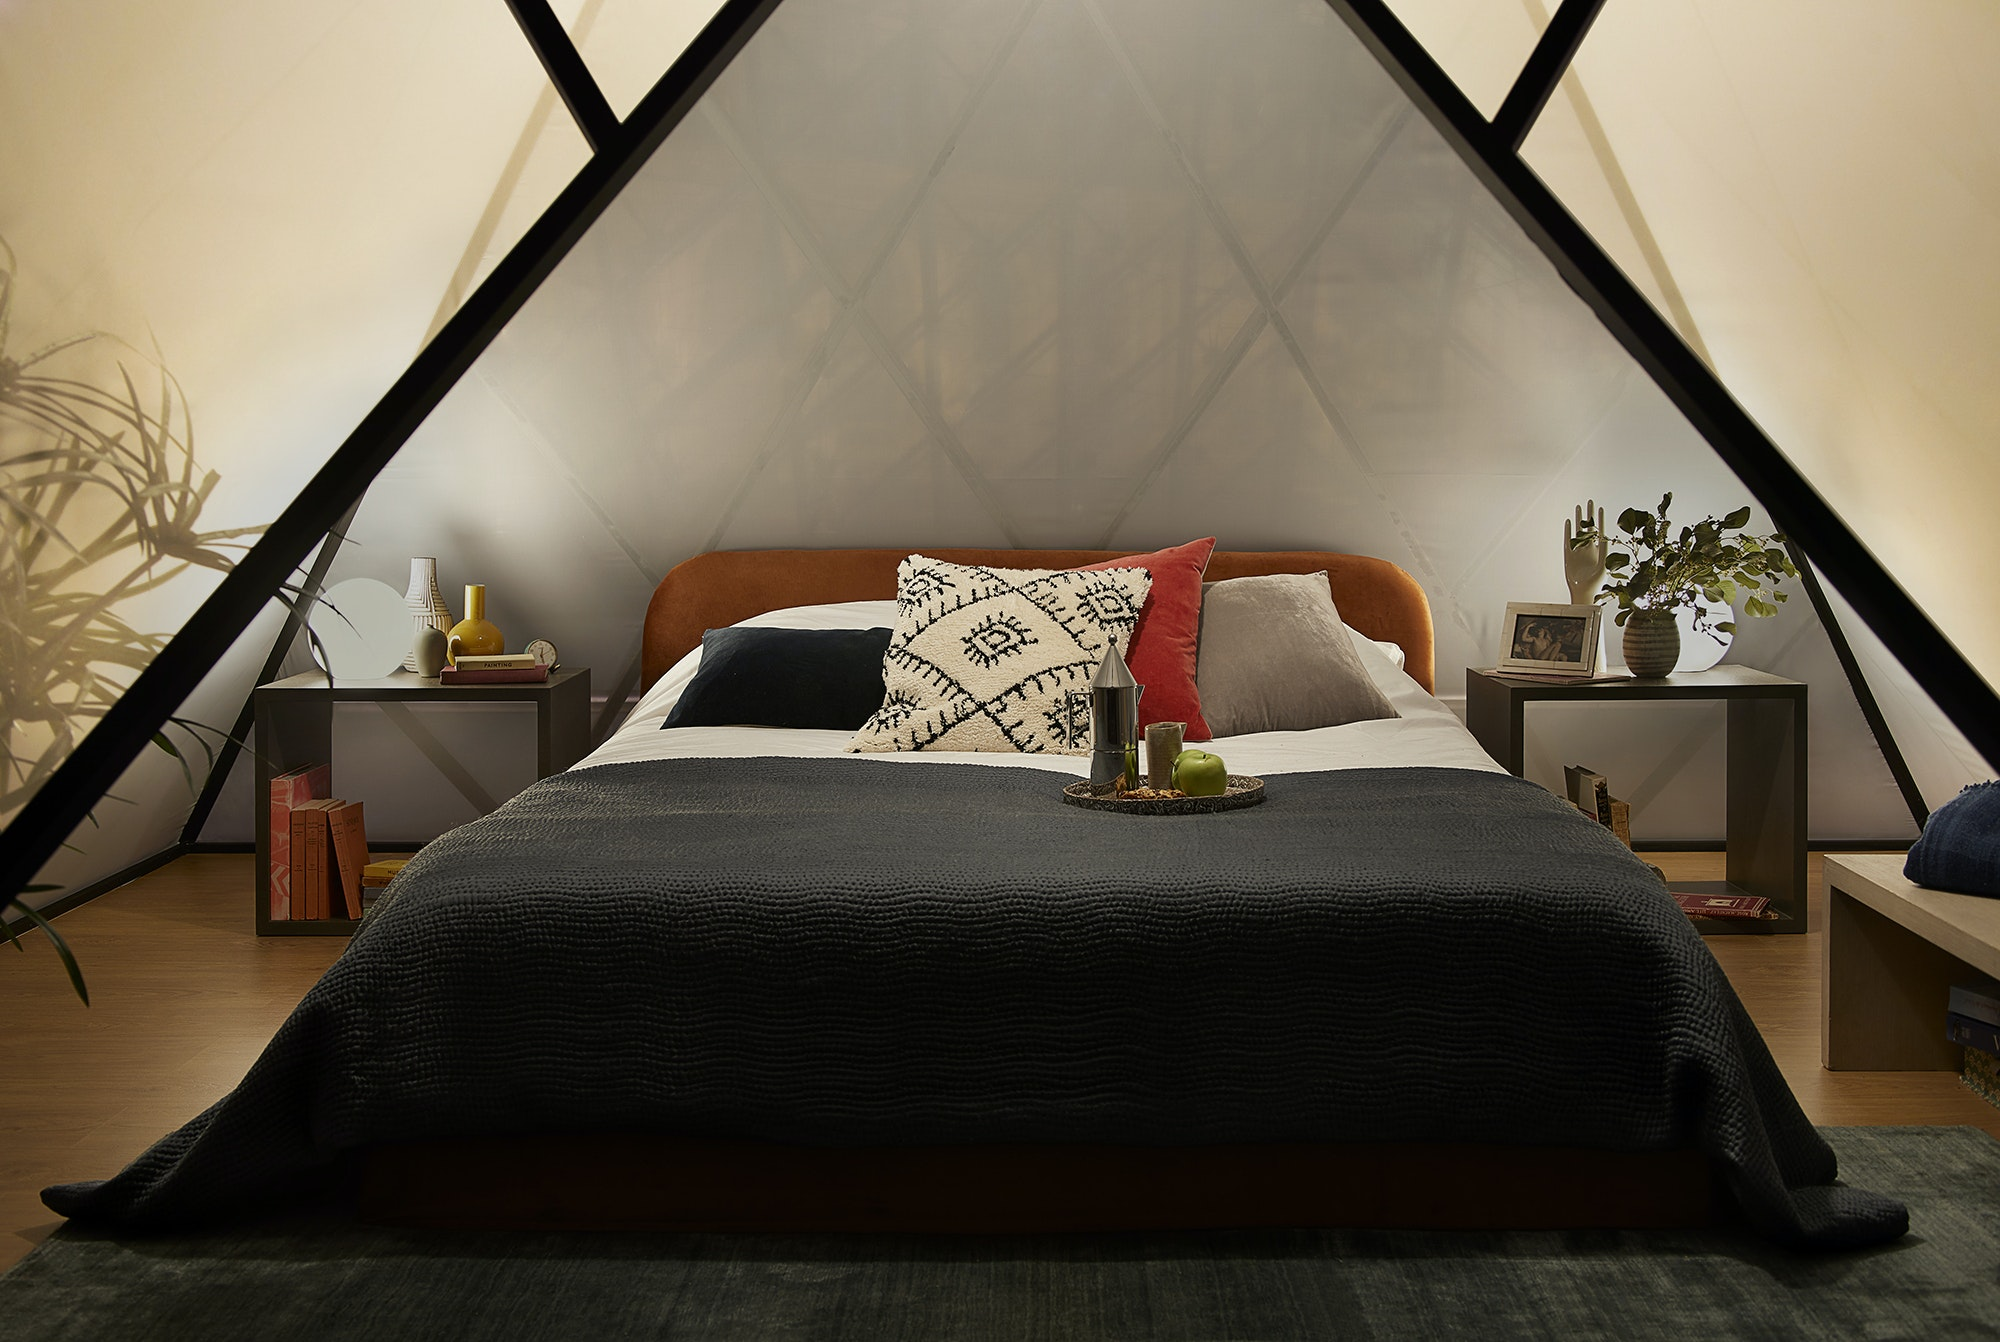 Inside the mini-pyramid bedroom at the Louvre